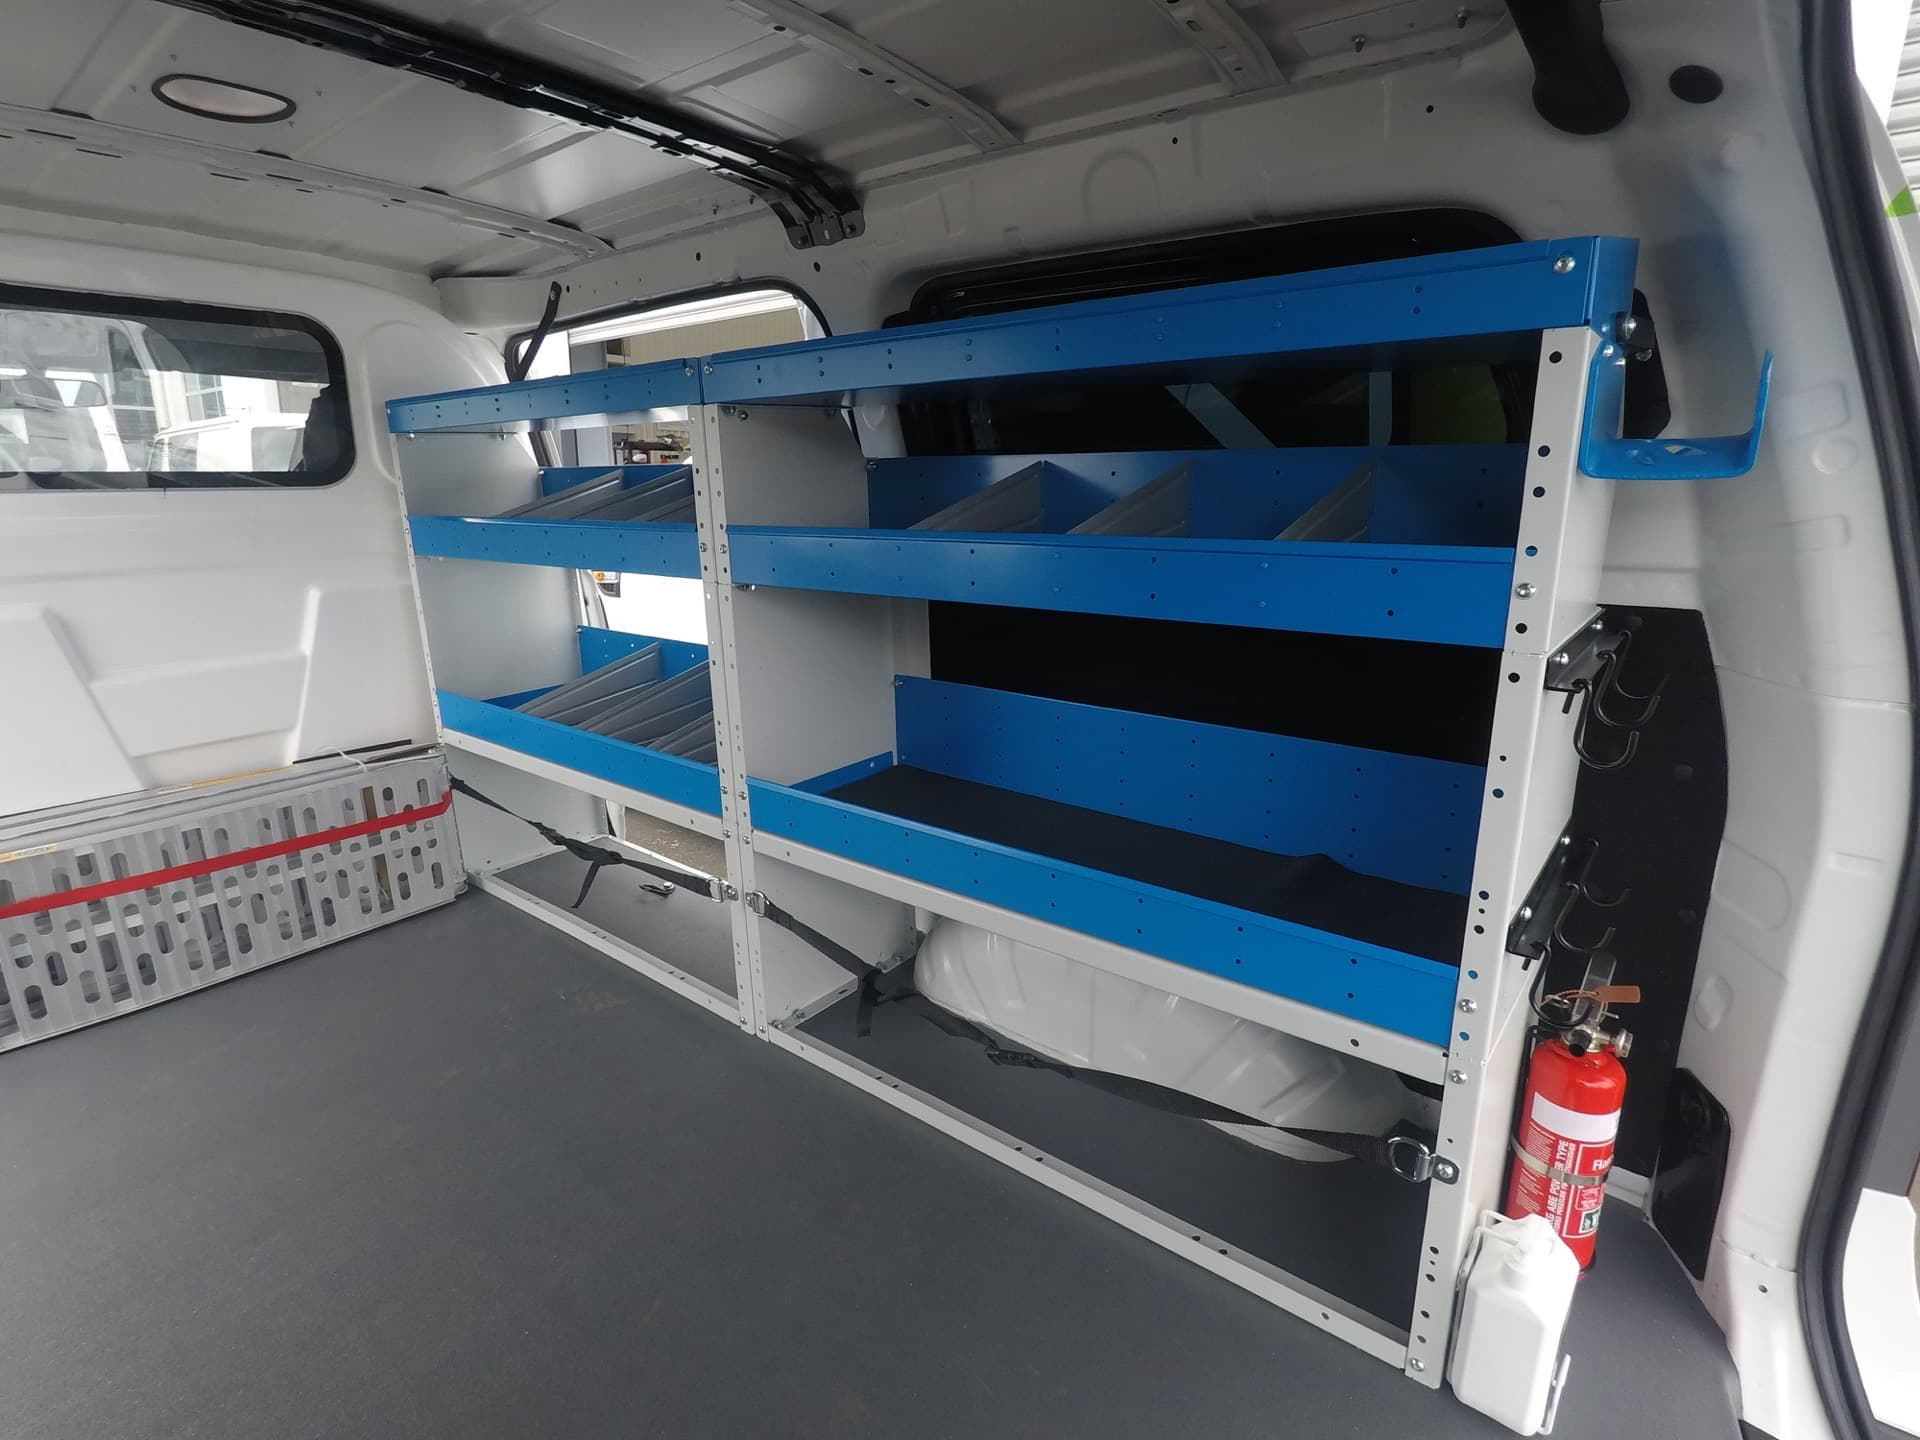 Commercial van fitout with shelves